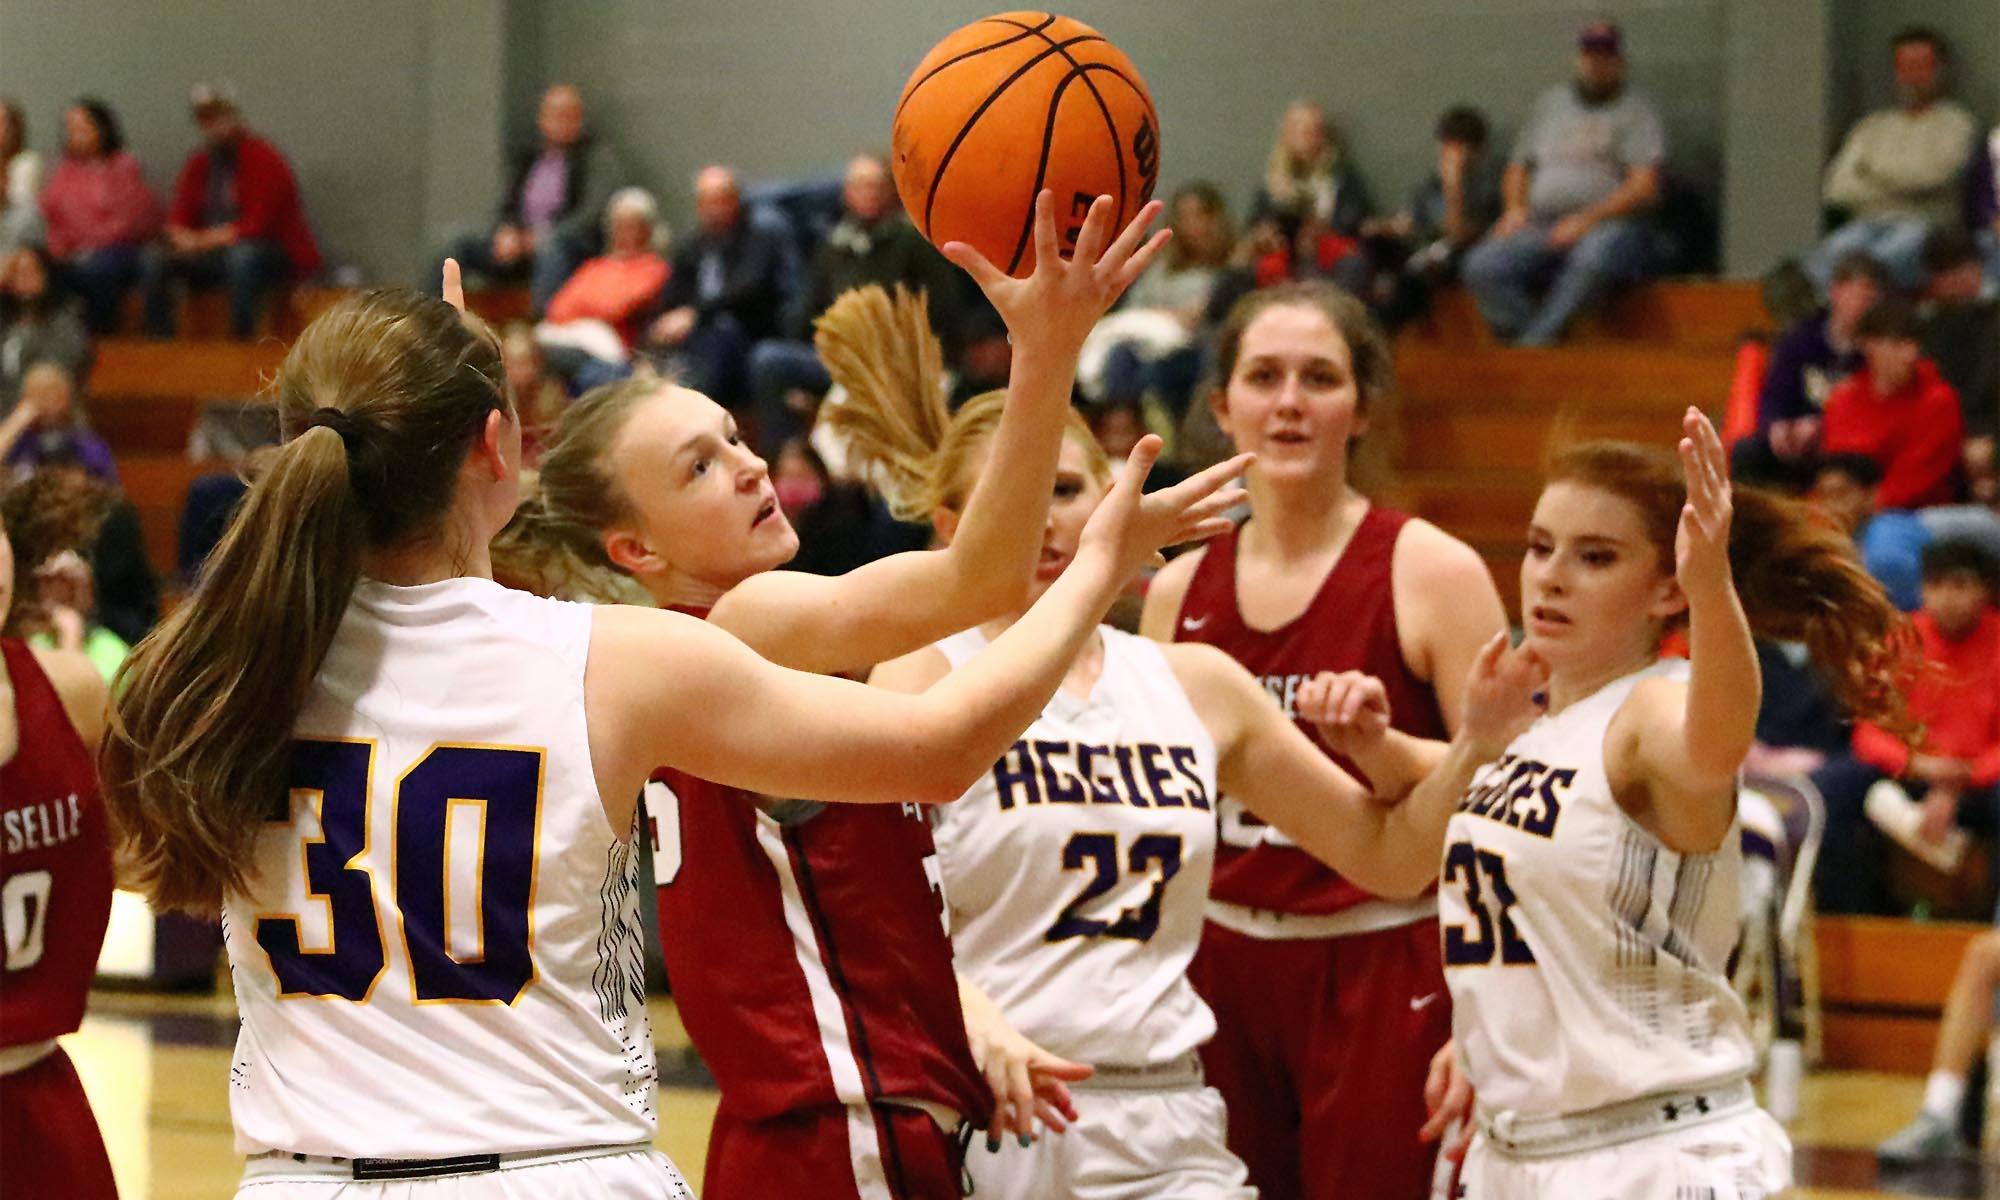 Strong second quarter leads Lady Tigers to 61-44 win at Fairview